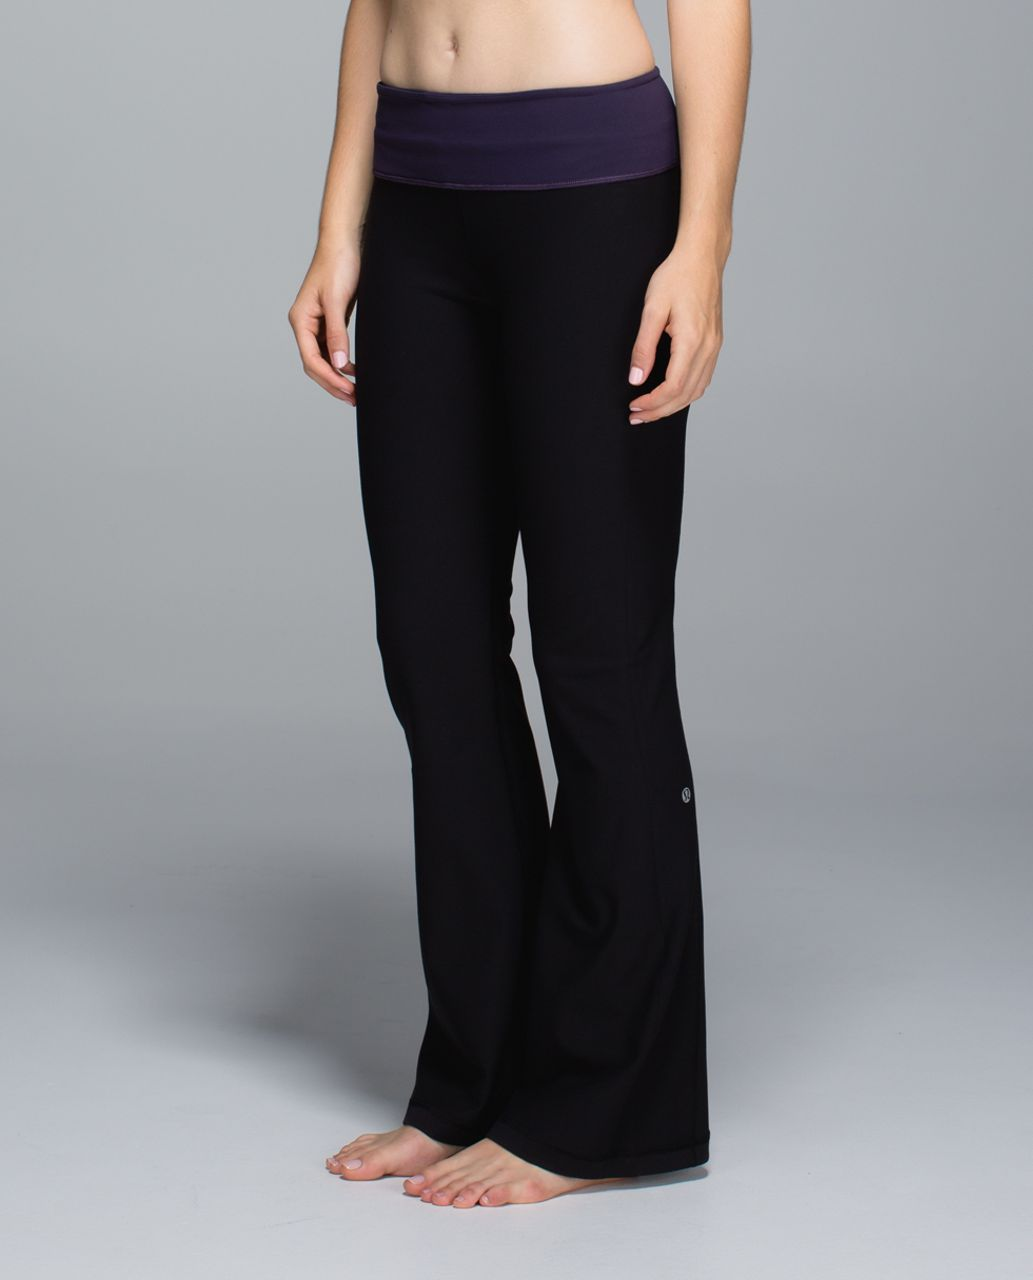 Lululemon Groove Pant *Full-On Luon (Regular) - Black / Black Grape / Going Grape